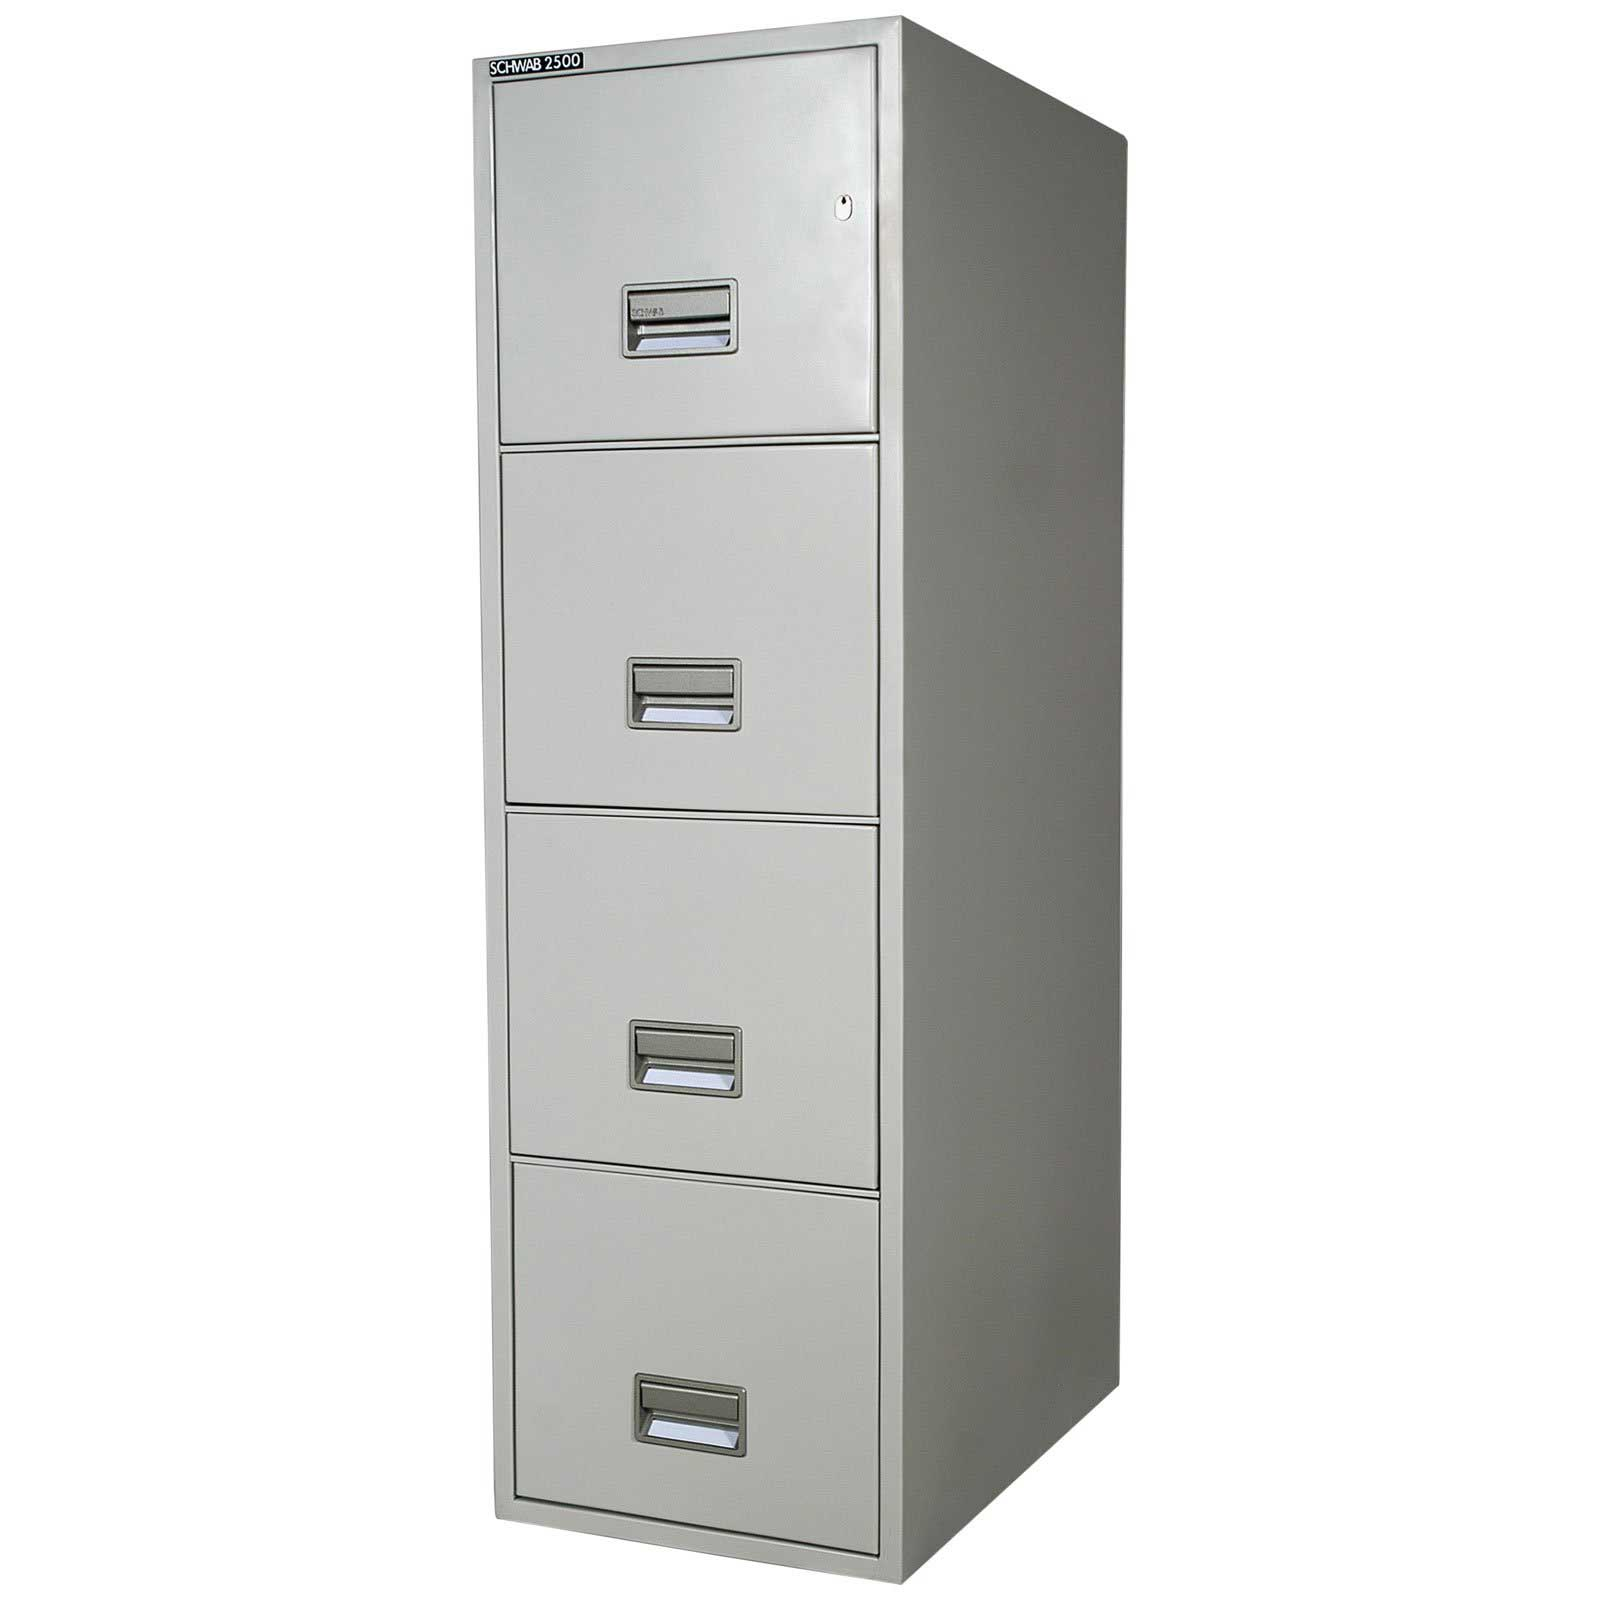 Schwab 2500 fireproof 4 drawers metal file cabinets